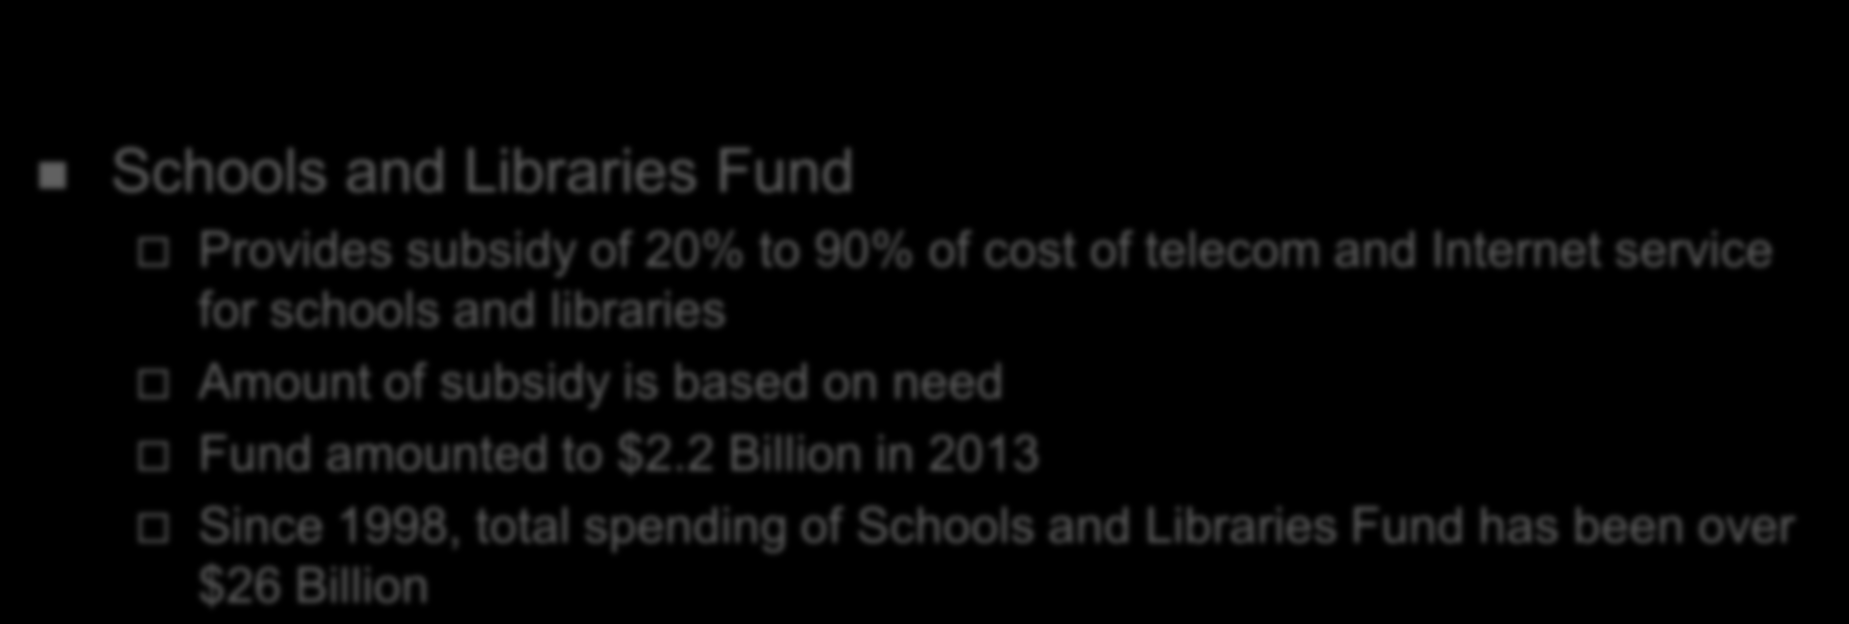 Universal Service in Telecom Act Schools and Libraries Fund Provides subsidy of 20% to 90% of cost of telecom and Internet service for schools and